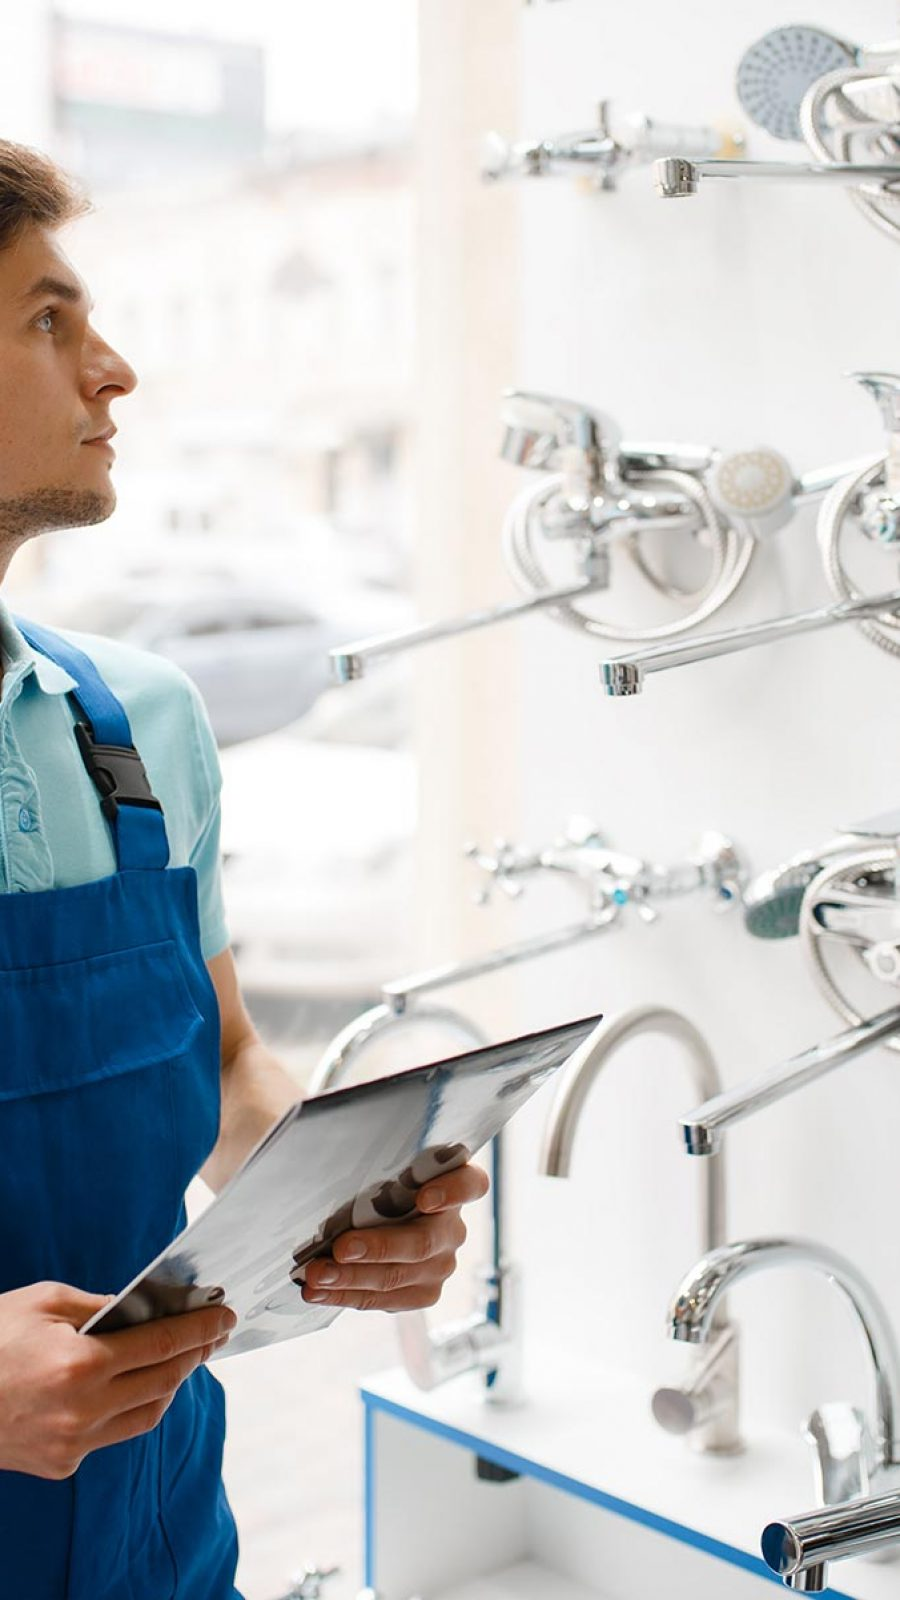 plumber-in-uniform-at-showcase-in-plumbering-store-PLGMWW8